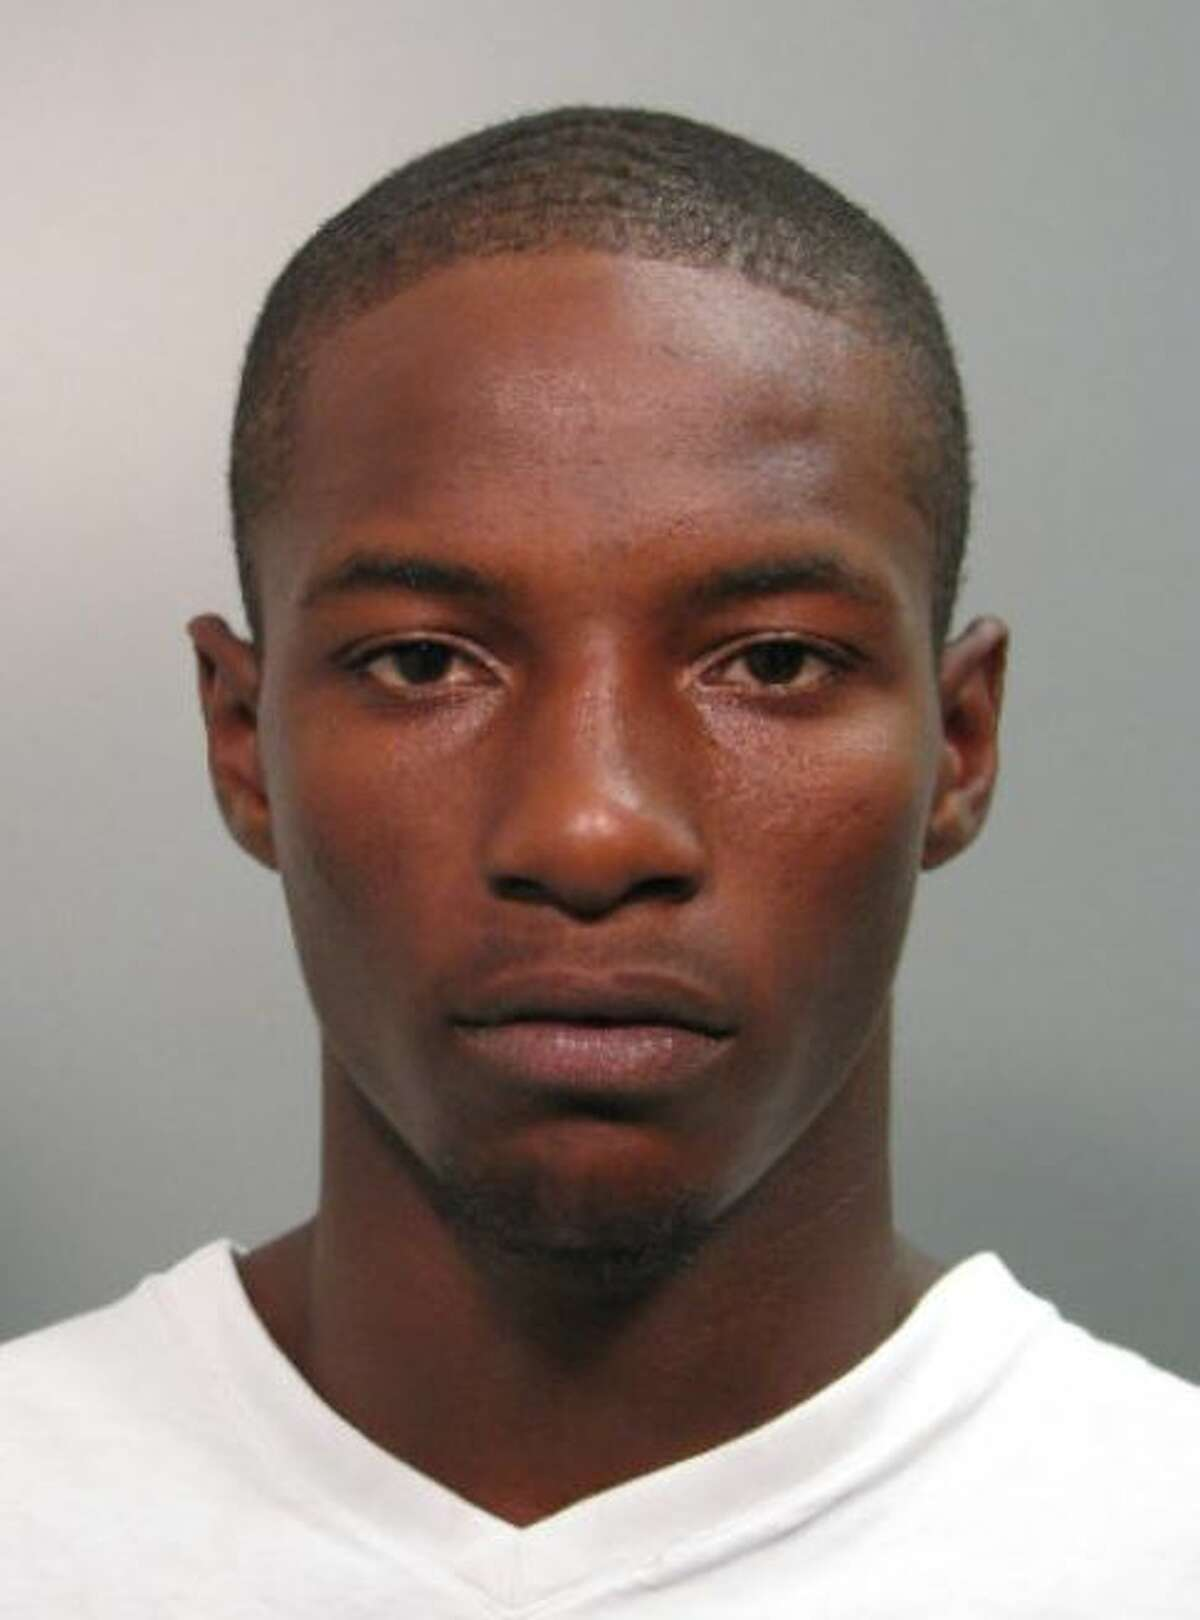 Authorities are searching for James Johnson after a woman was shot in her car on Thursday, May 31, 2018.